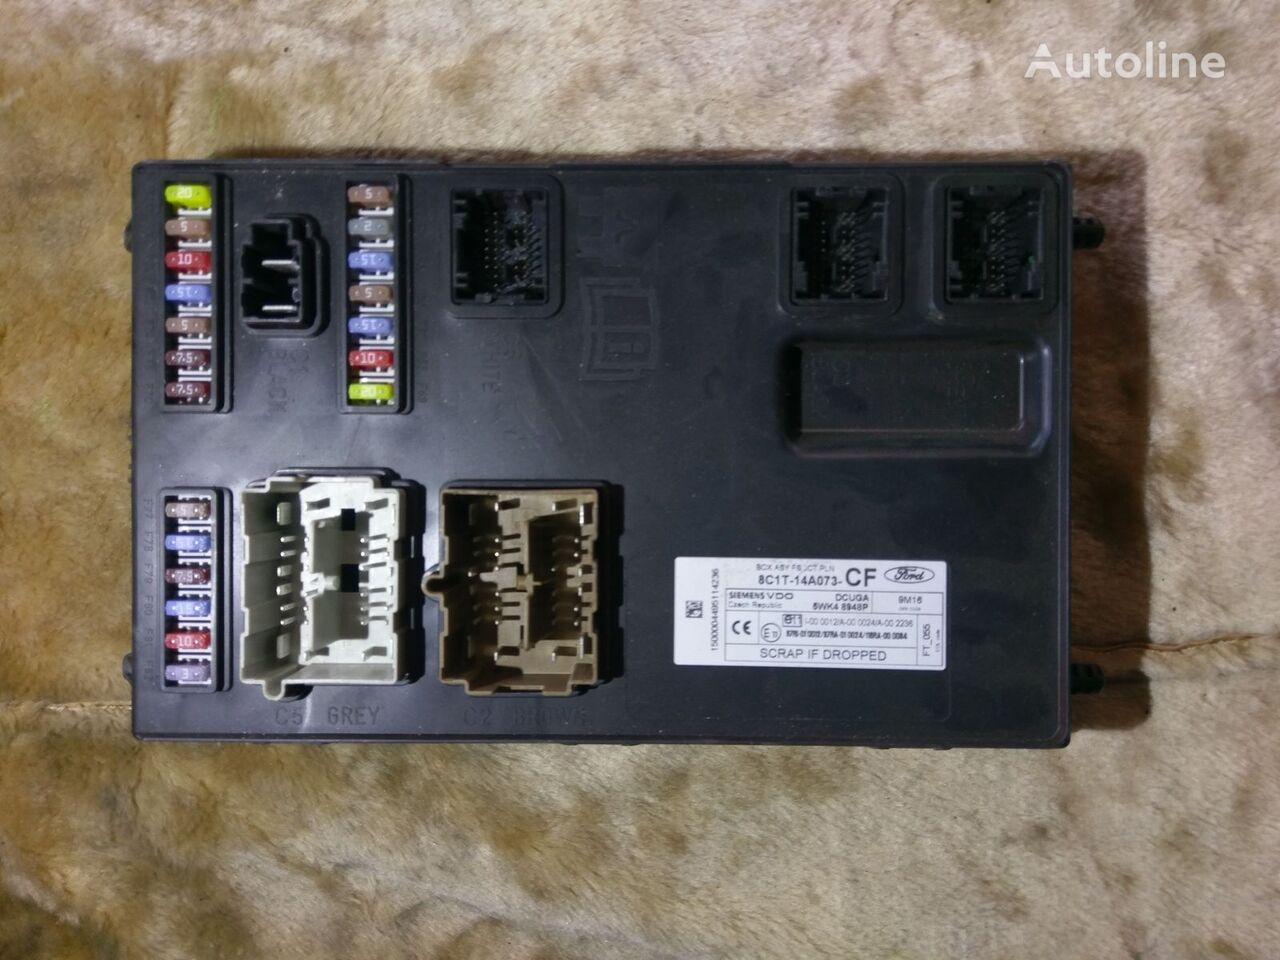 Fuse Box On A Ford Transit Wiring Library In Siemens Vdo Asy 8c1t 14a073 Cf Block For Van